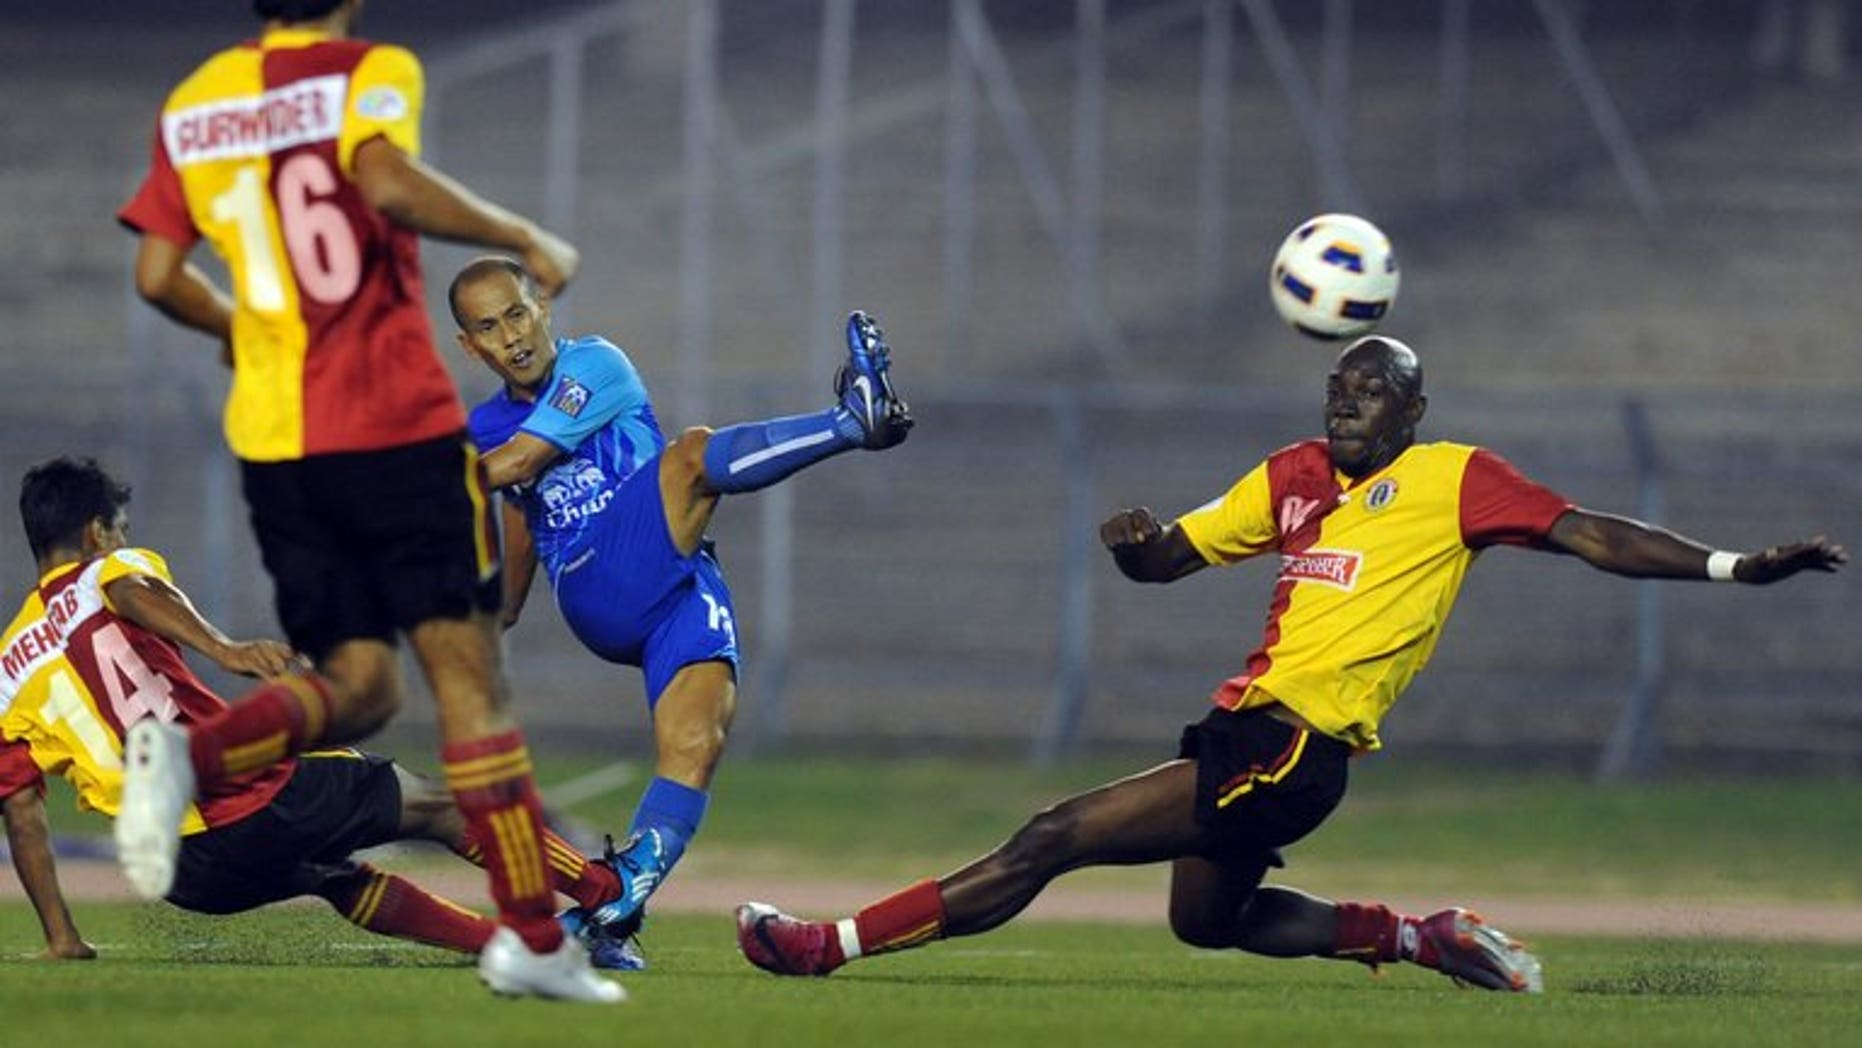 India's East Bengal players compete for the ball with Thailand's Chonburi's Chaiman Therdsak (centre) during their AFC Cup match at Salt Lake stadium in Kolkata on March 2, 2011. India's football chiefs backed a proposal to hold a new tournament inspired by cricket's popular Indian Premier League, despite fierce opposition from the country's top clubs.